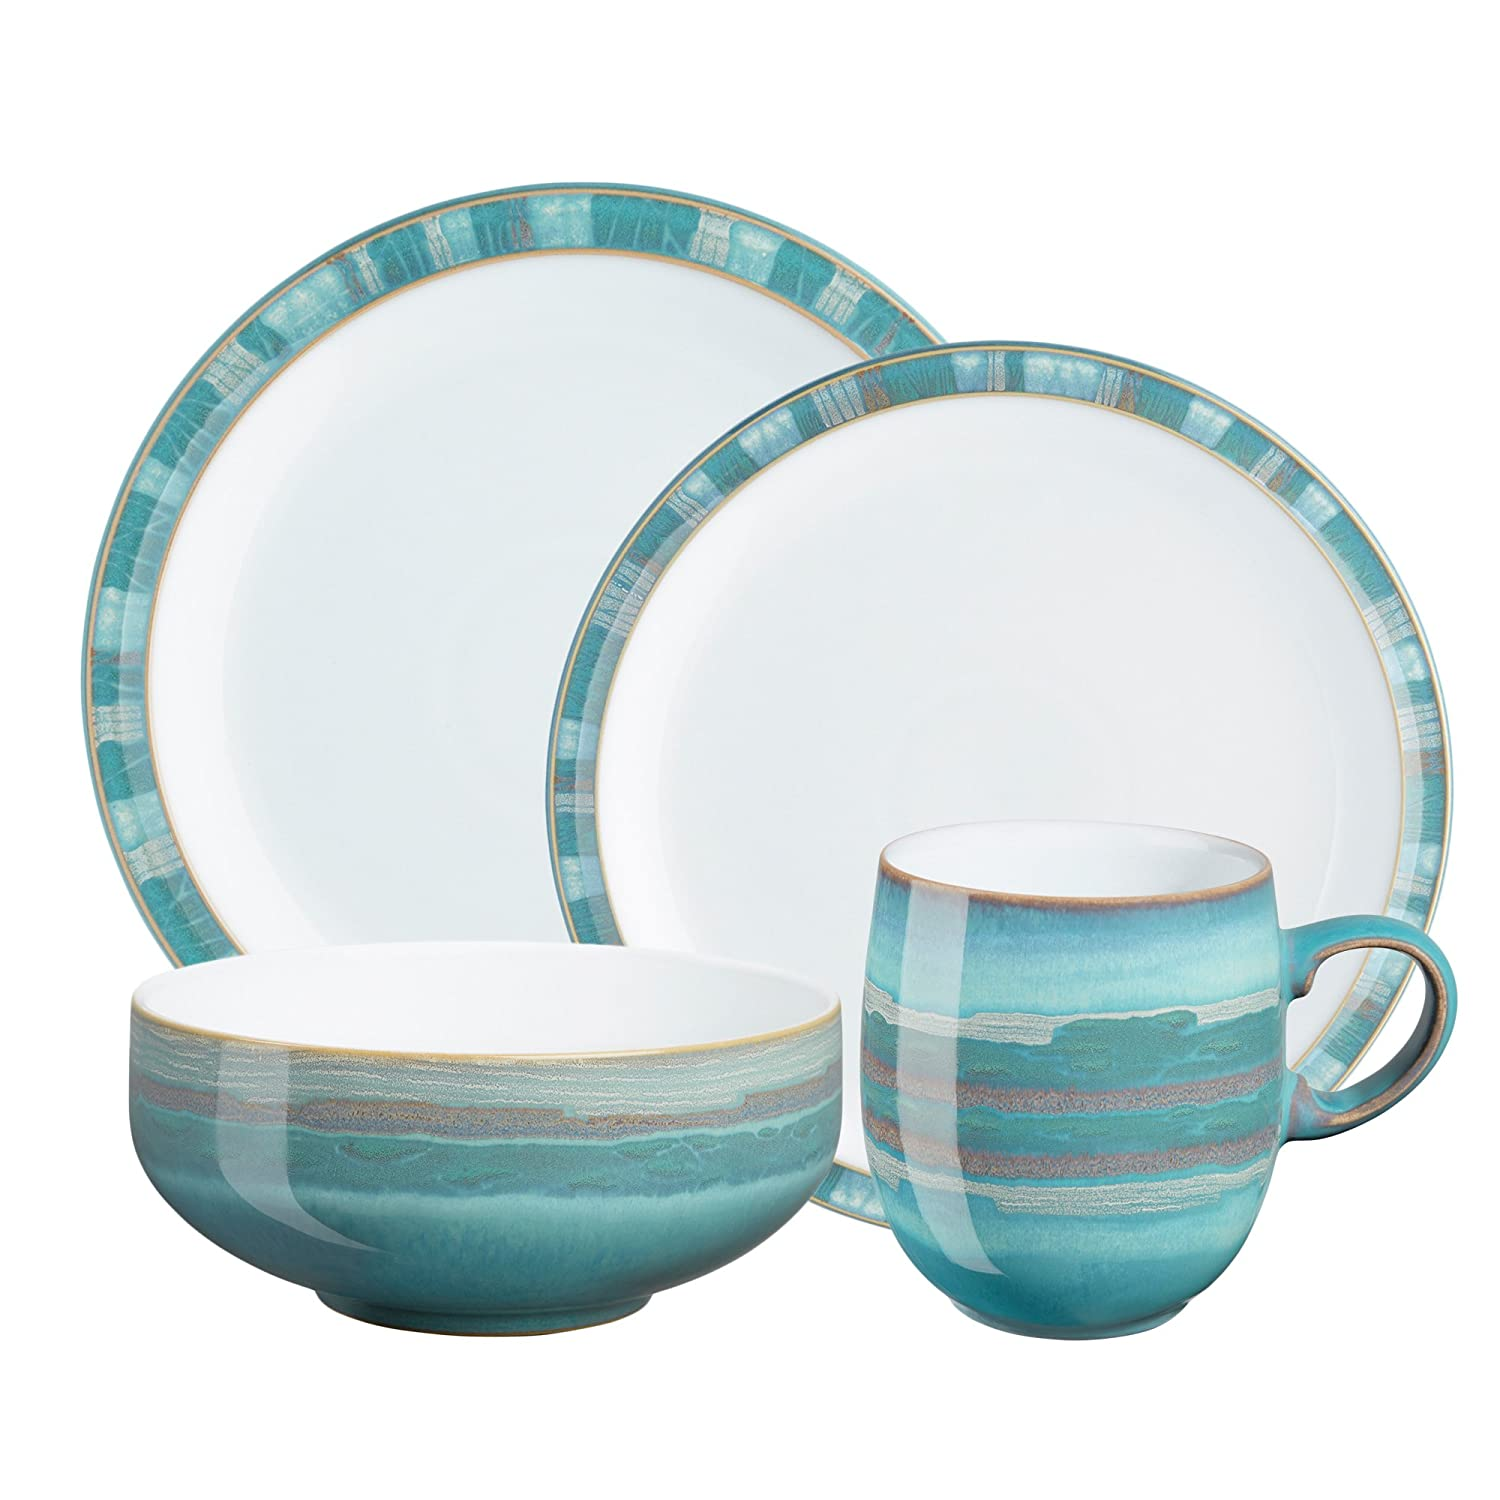 sc 1 st  Amazon.com & Amazon.com | Denby Azure Coast 16-Piece Dinnerware Set: Dinnerware Sets